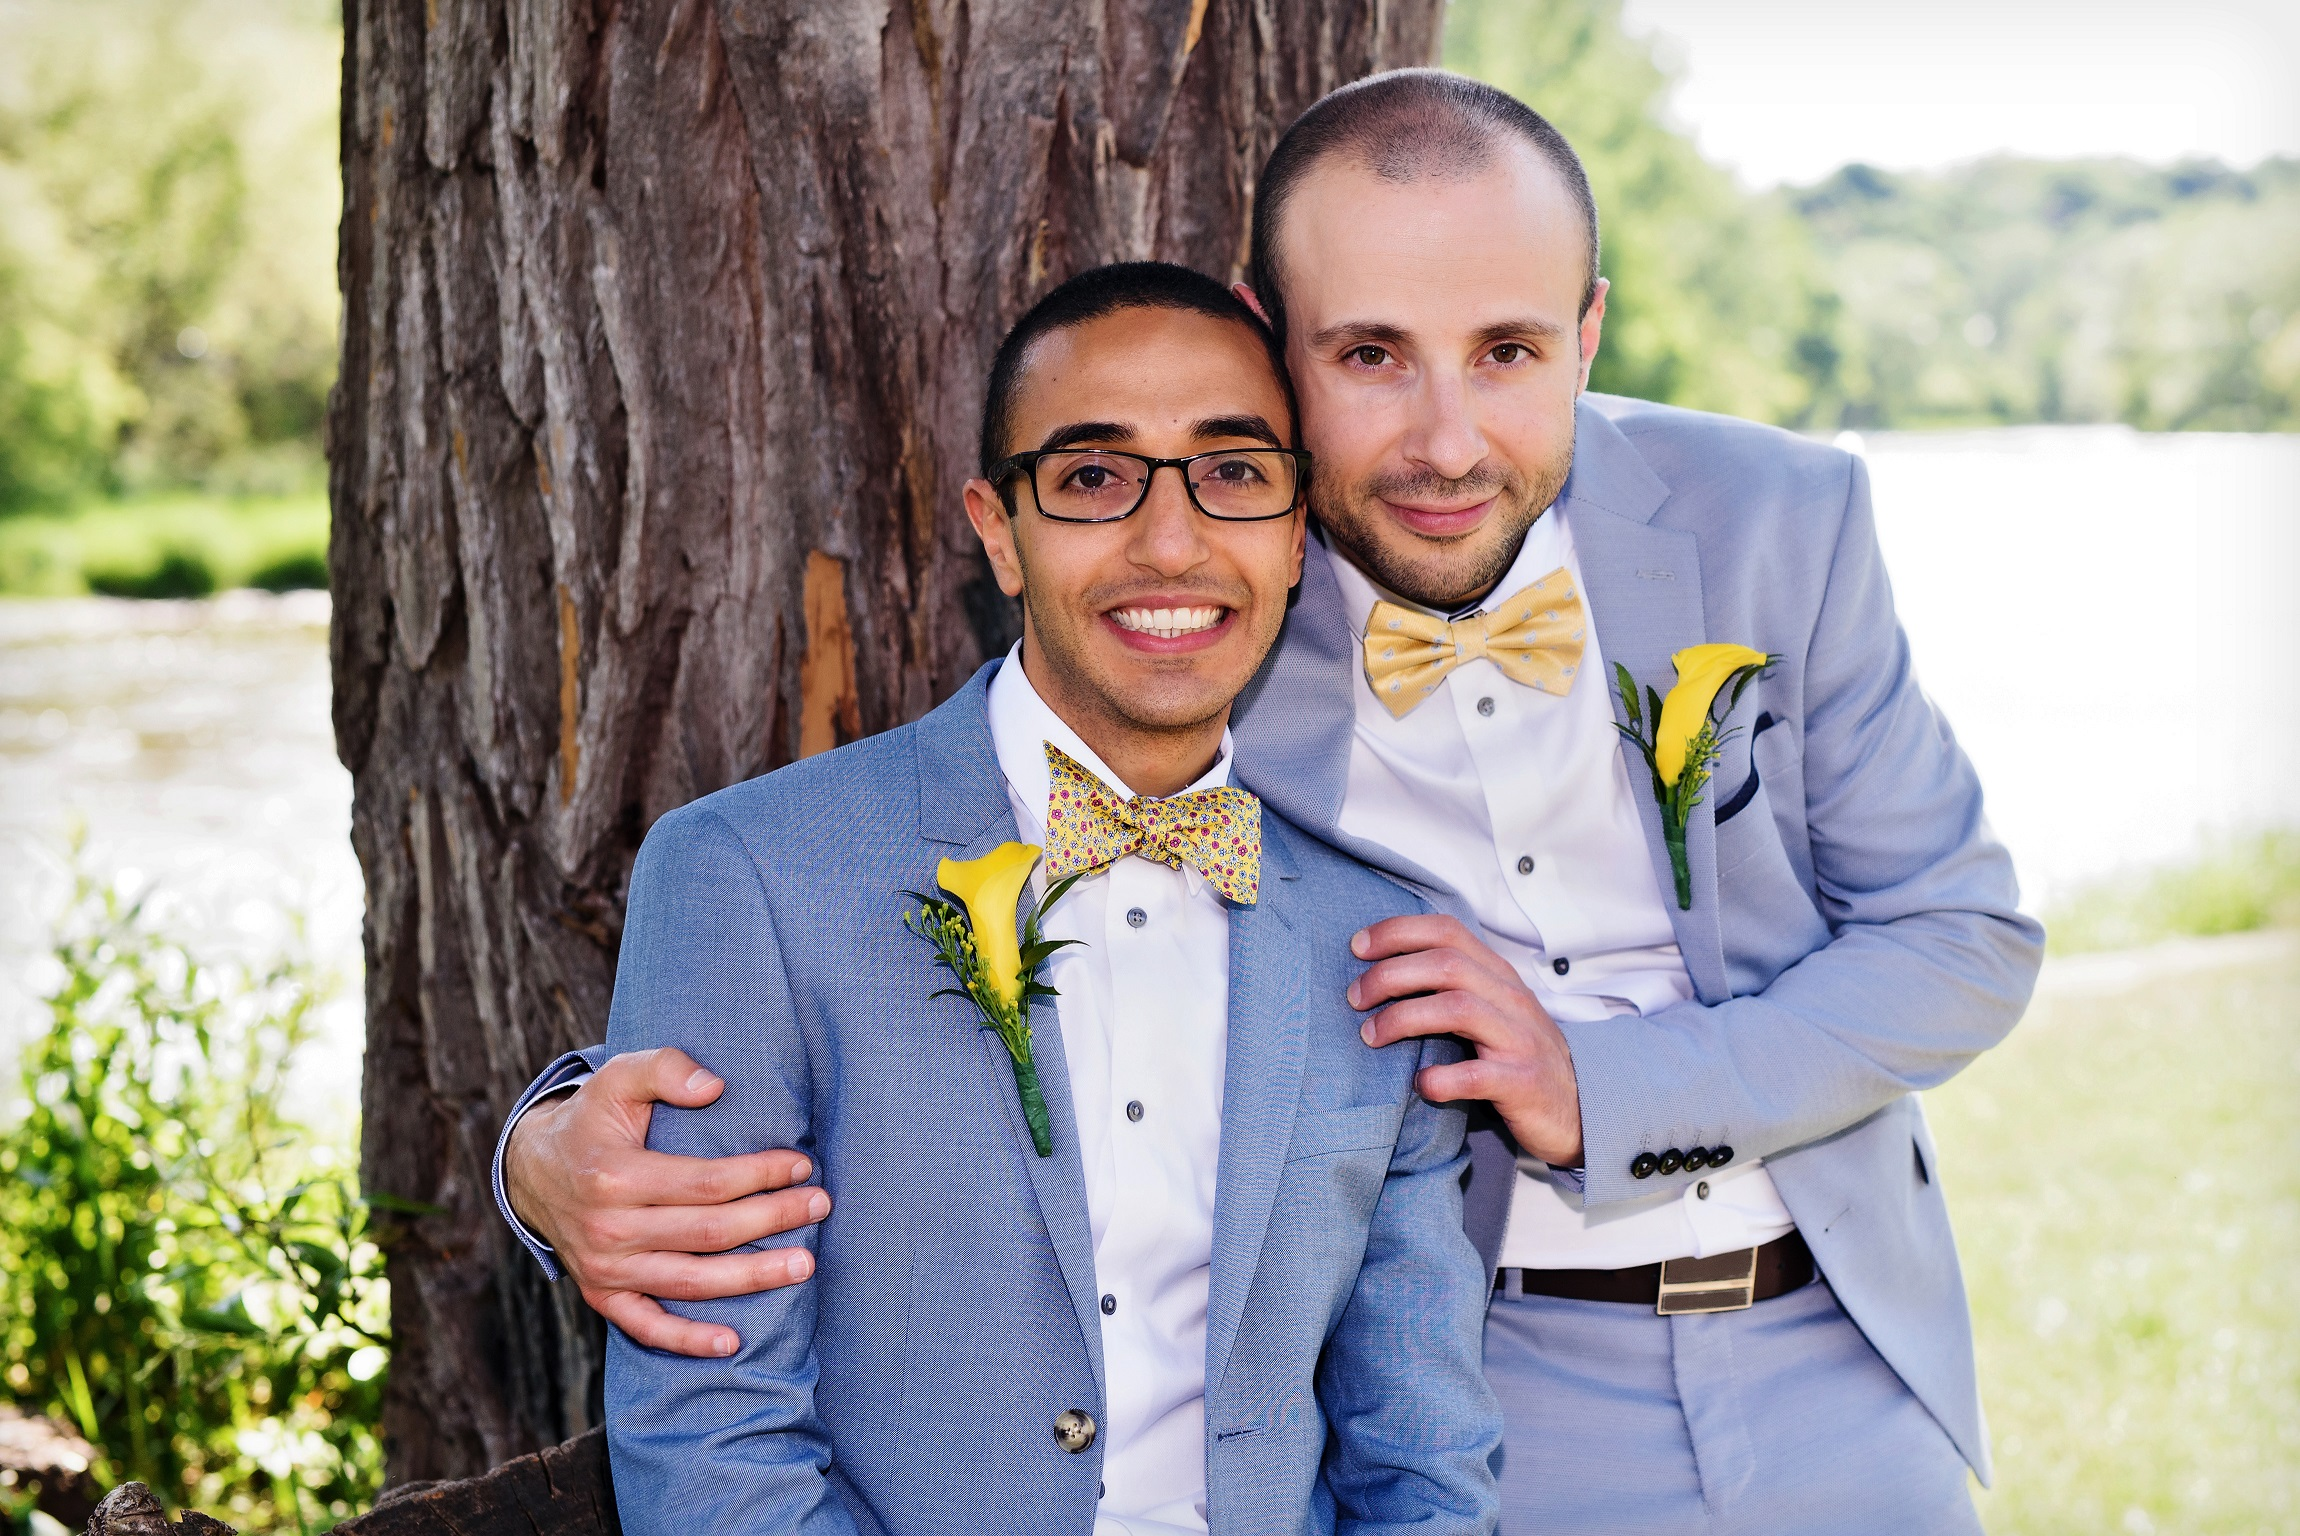 concepcion gay dating site Start a meaningful relationship with local gay singles on our gay dating site register for free and join thousands of gay singles looking for love.